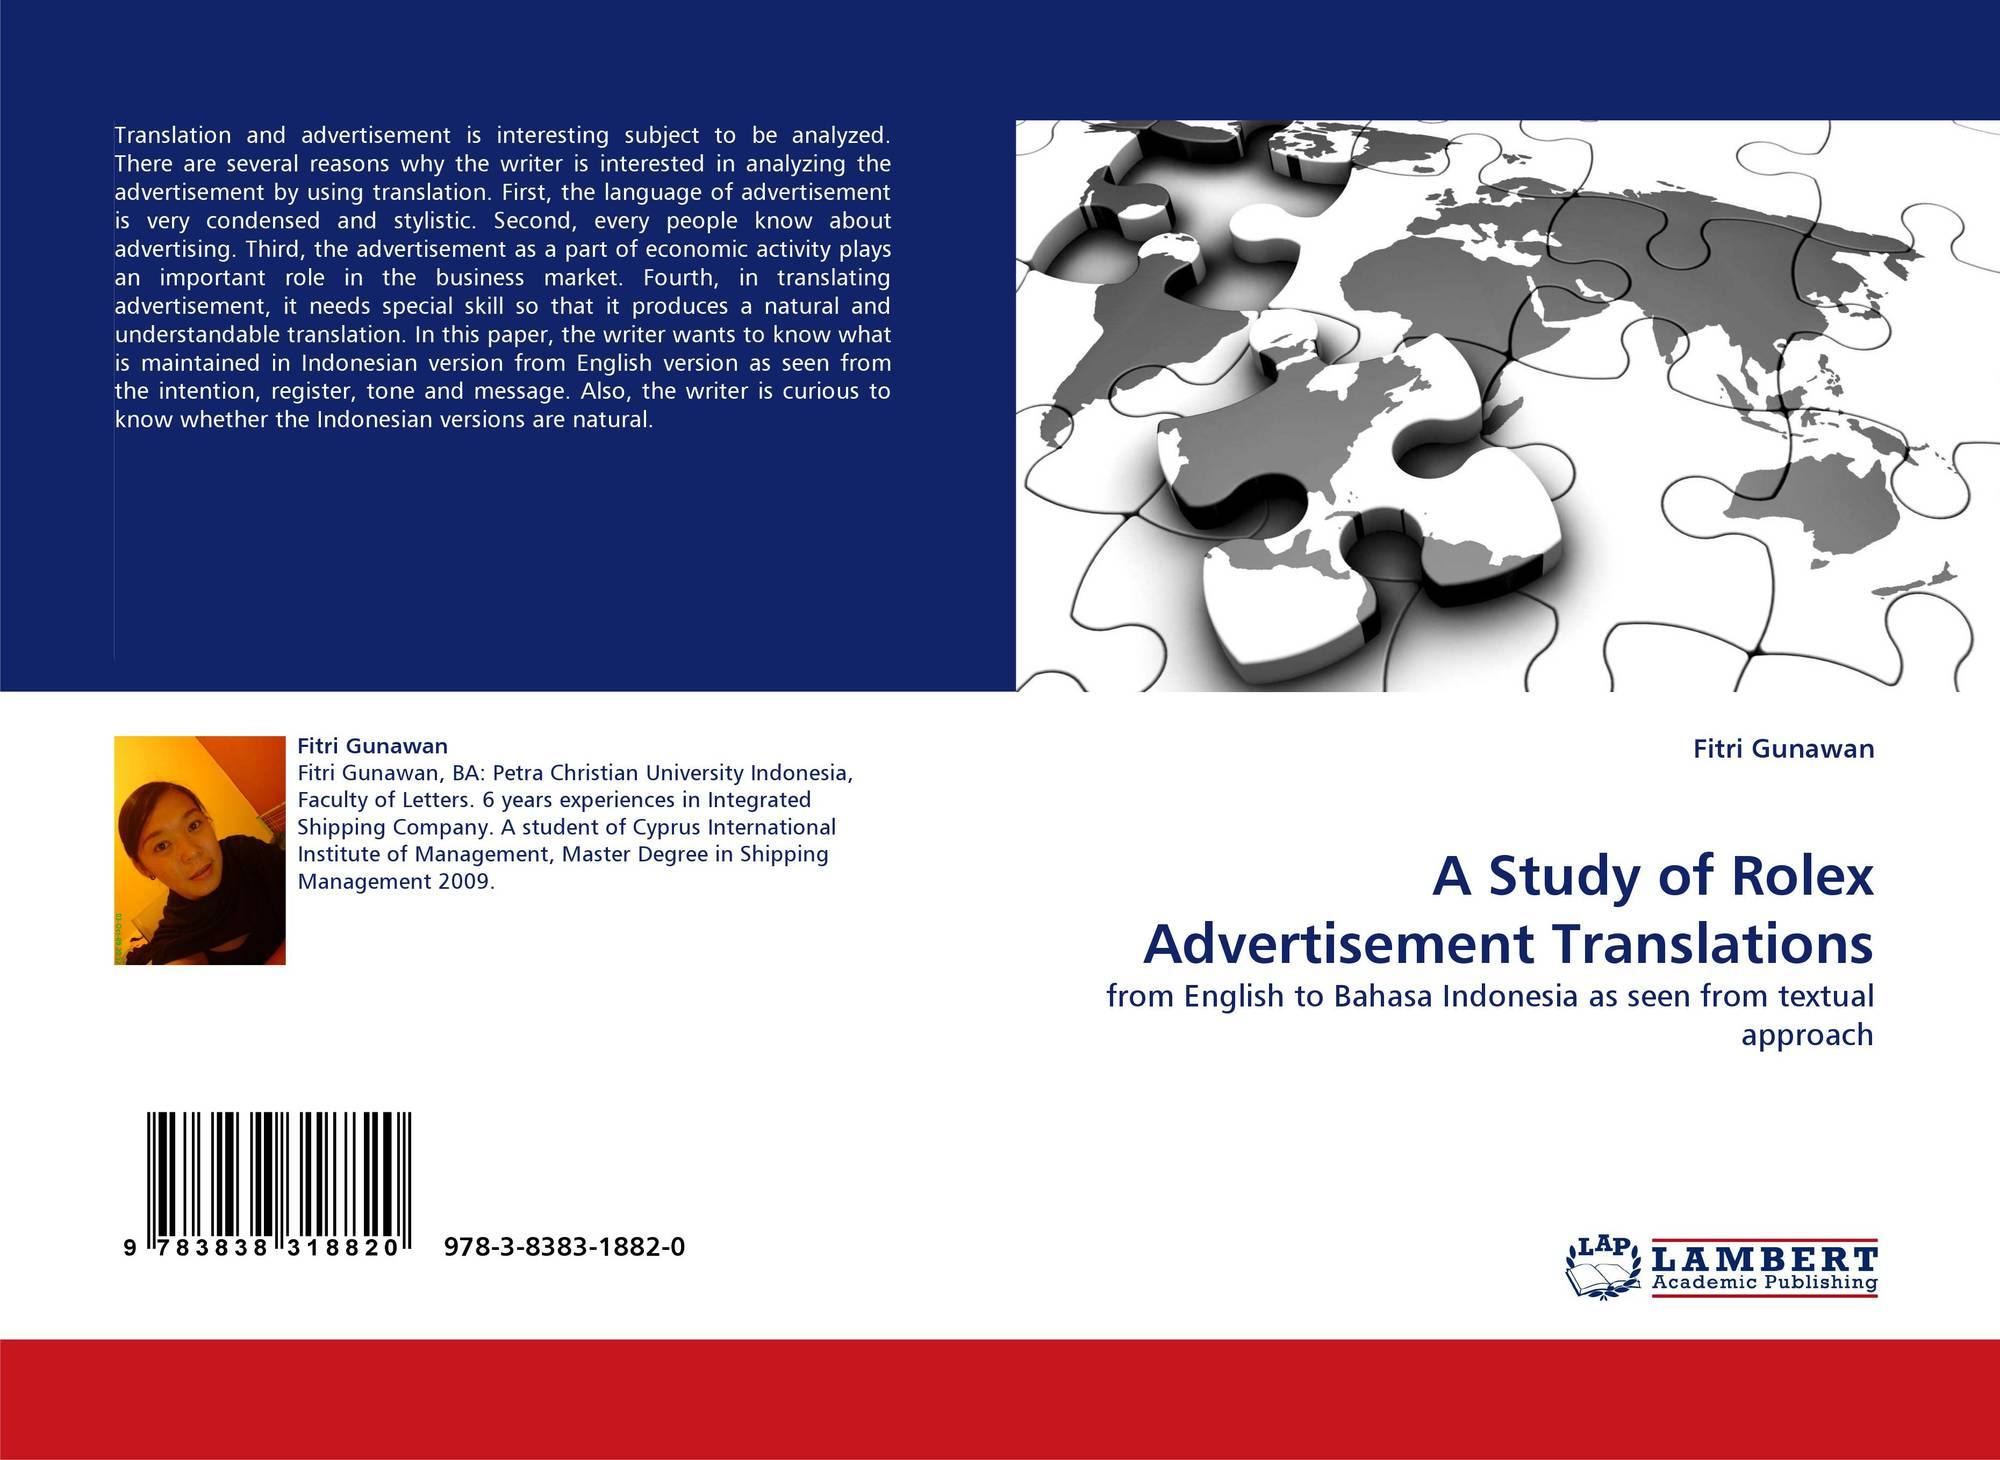 a study on role of advertisement